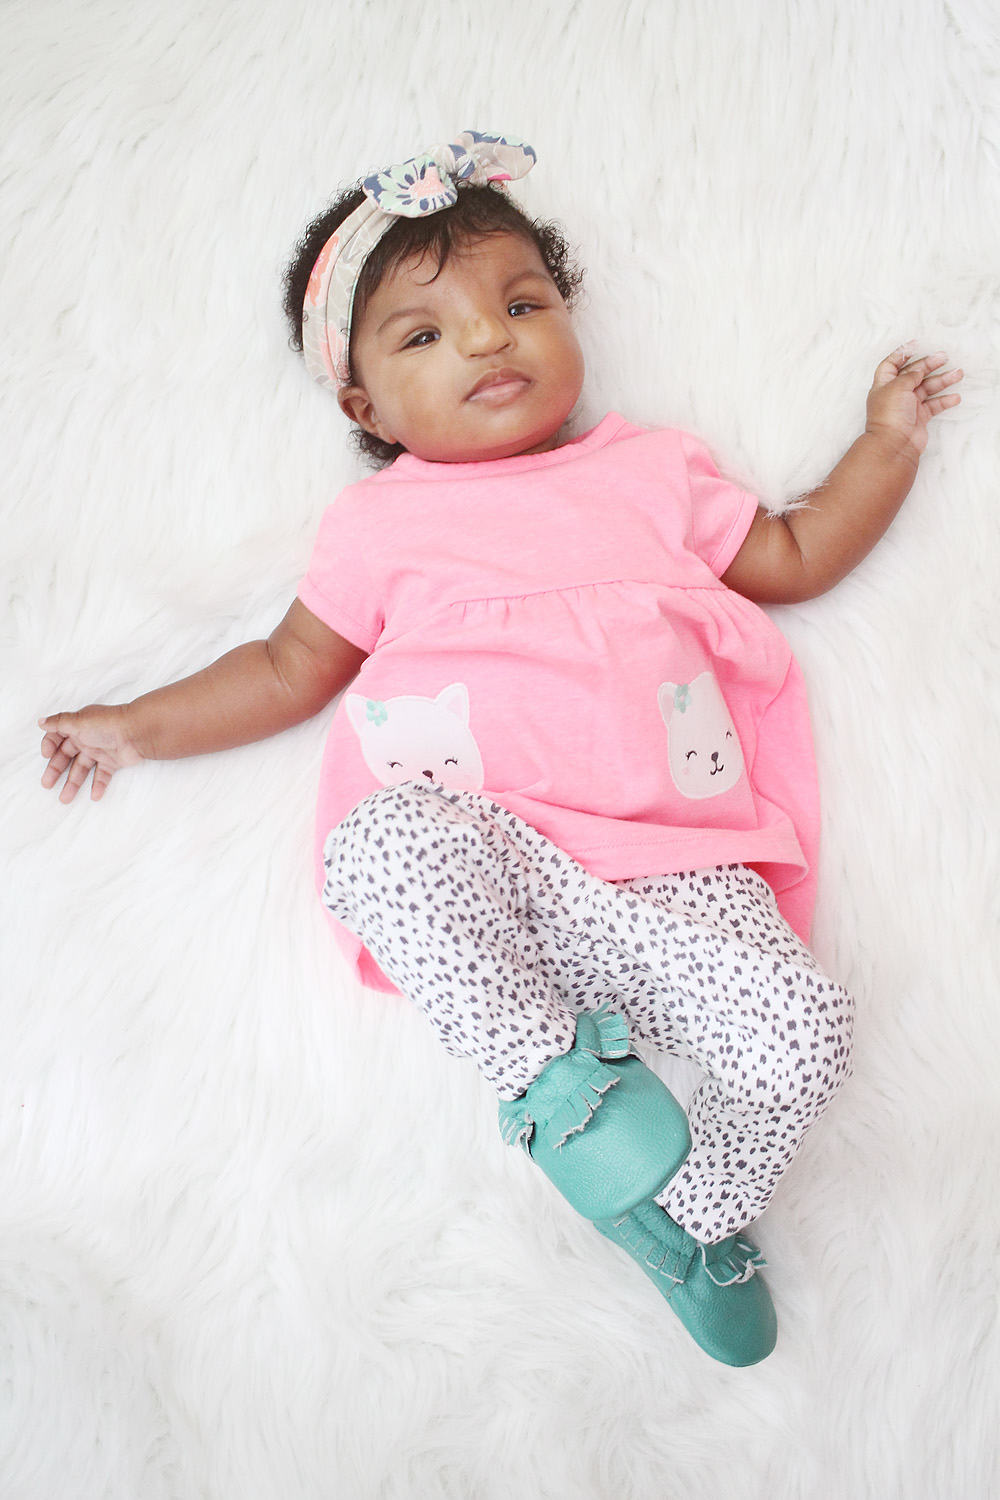 e18c2e6e4 Mija Style: Child of Mine by Carter's Spring Collection · Girl's Fashion,  Pregnancy & Baby